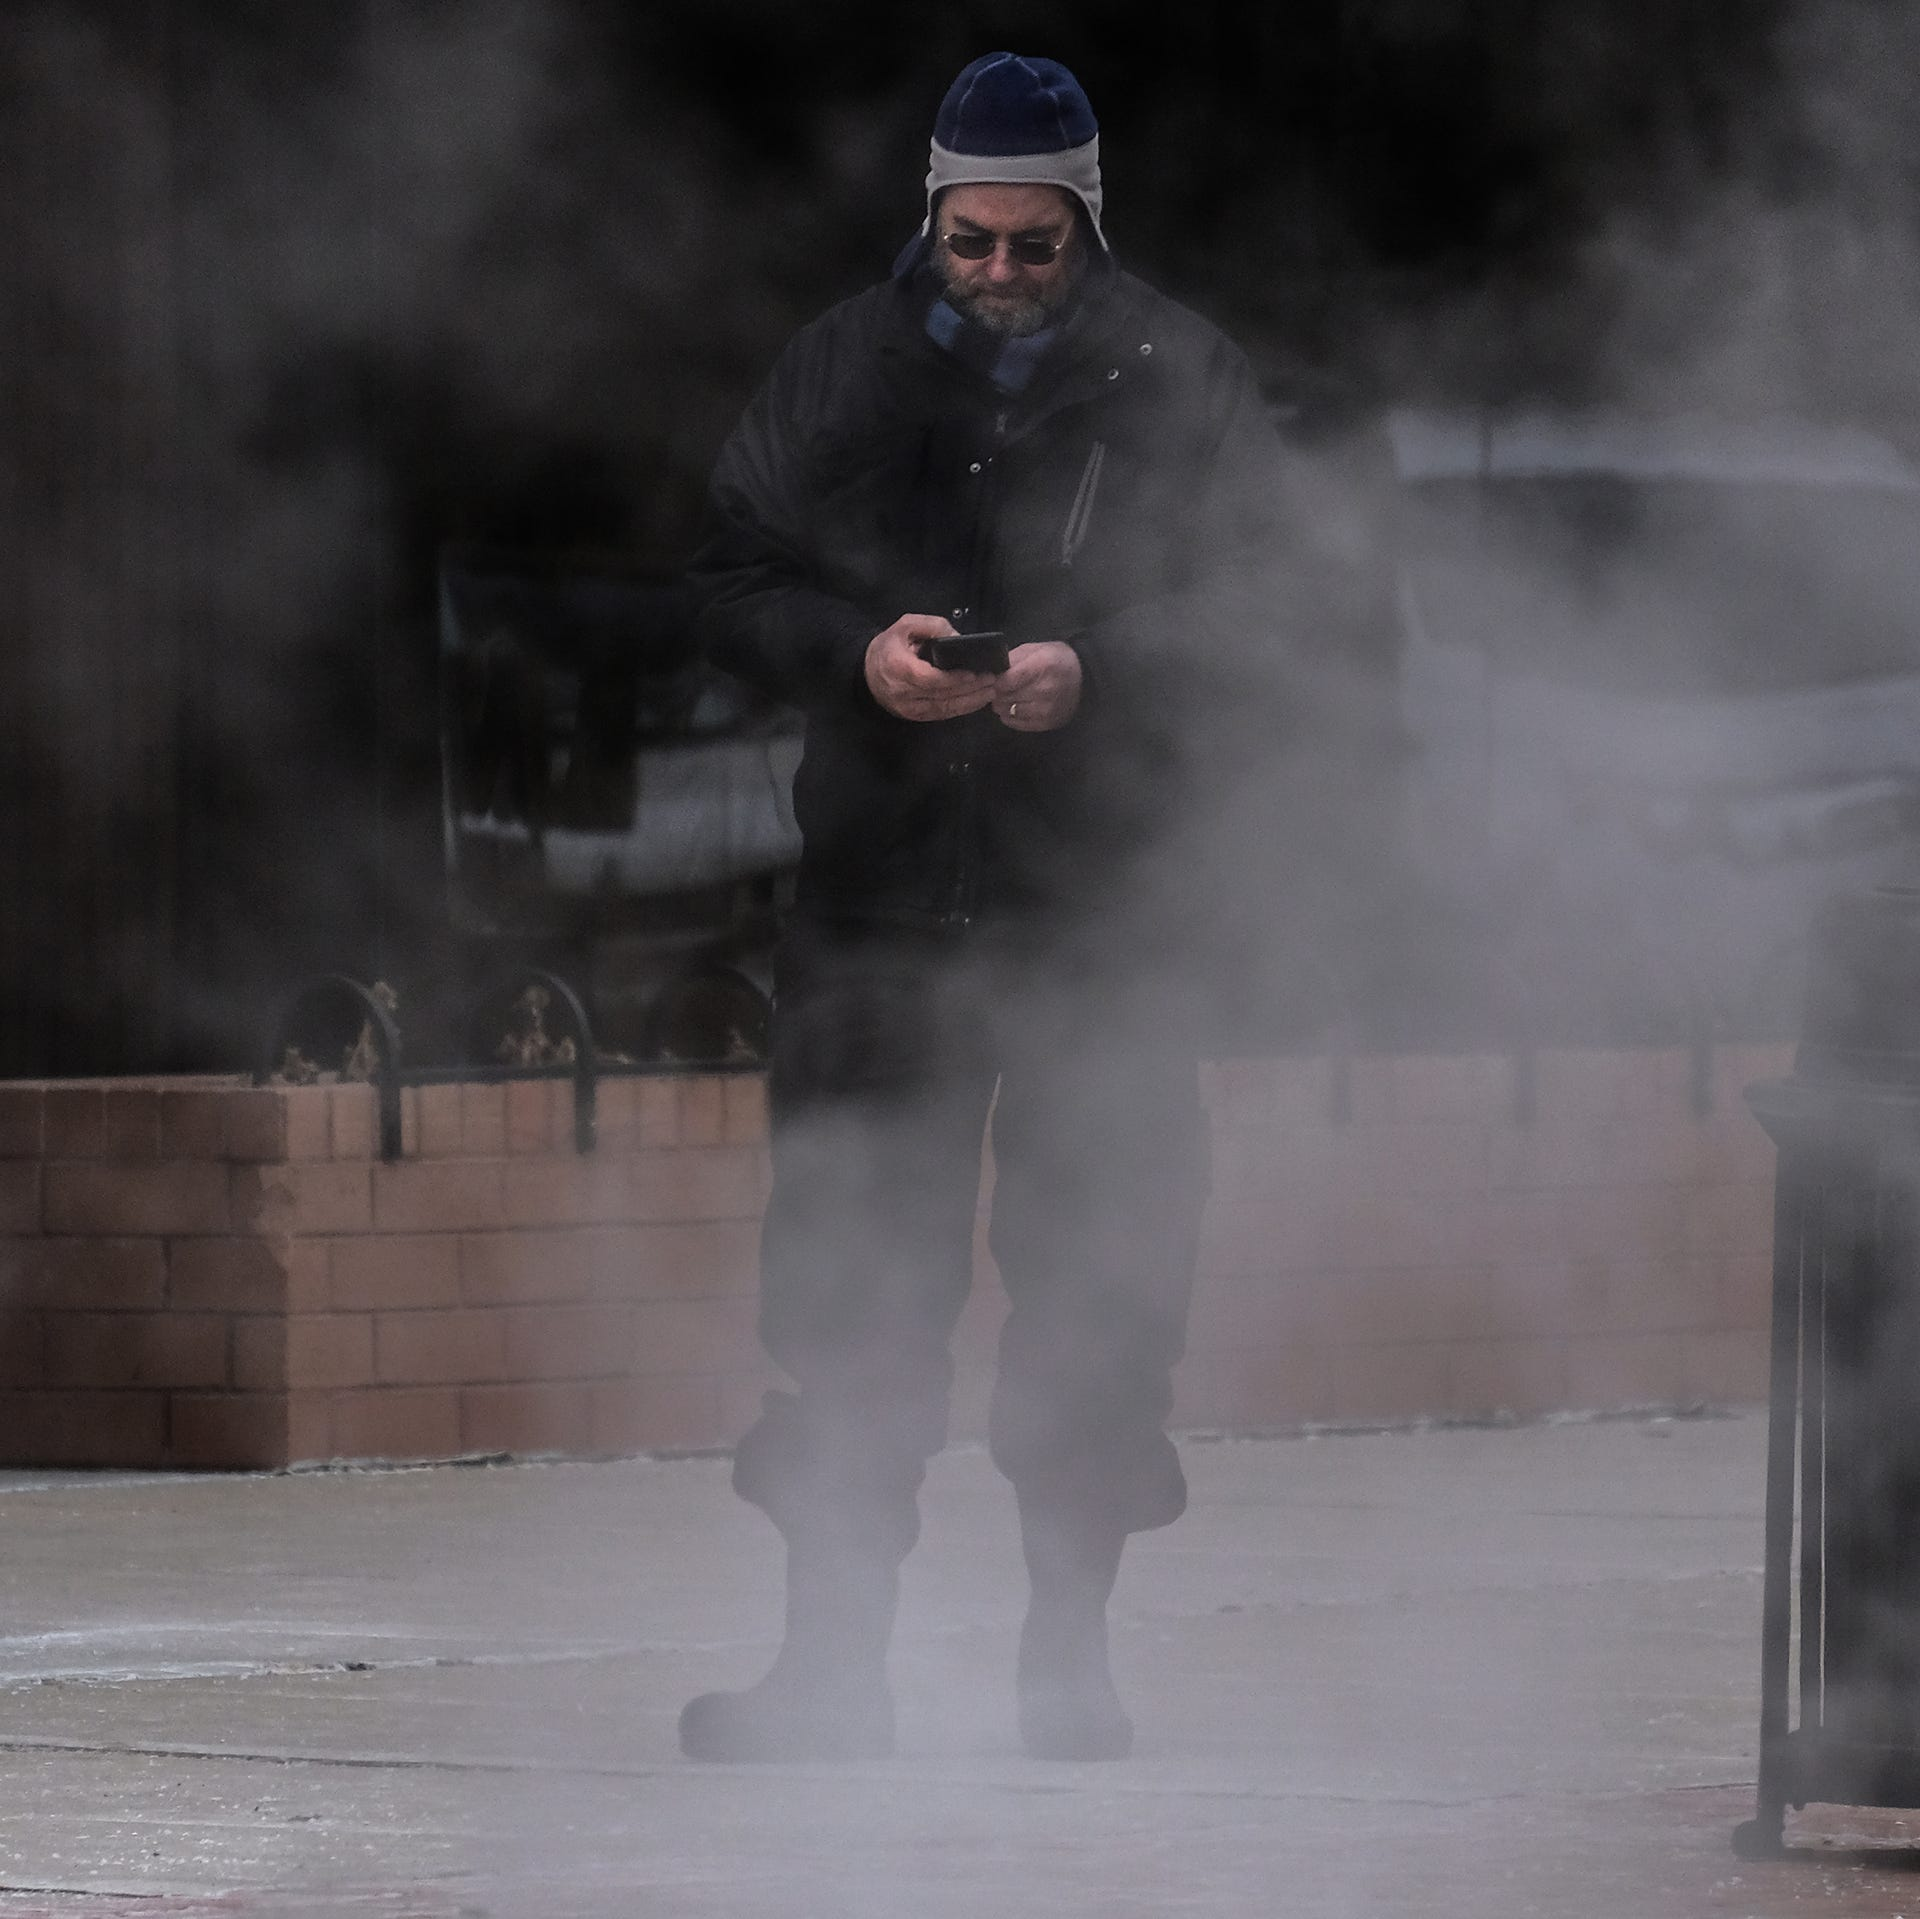 Steam rose from a vent Saturday afternoon in downtown Lansing into the cold air that partially obscured a man using his phone. The weather forecast this week calls for continued cold temperatures with lows this weekend in the single digits.